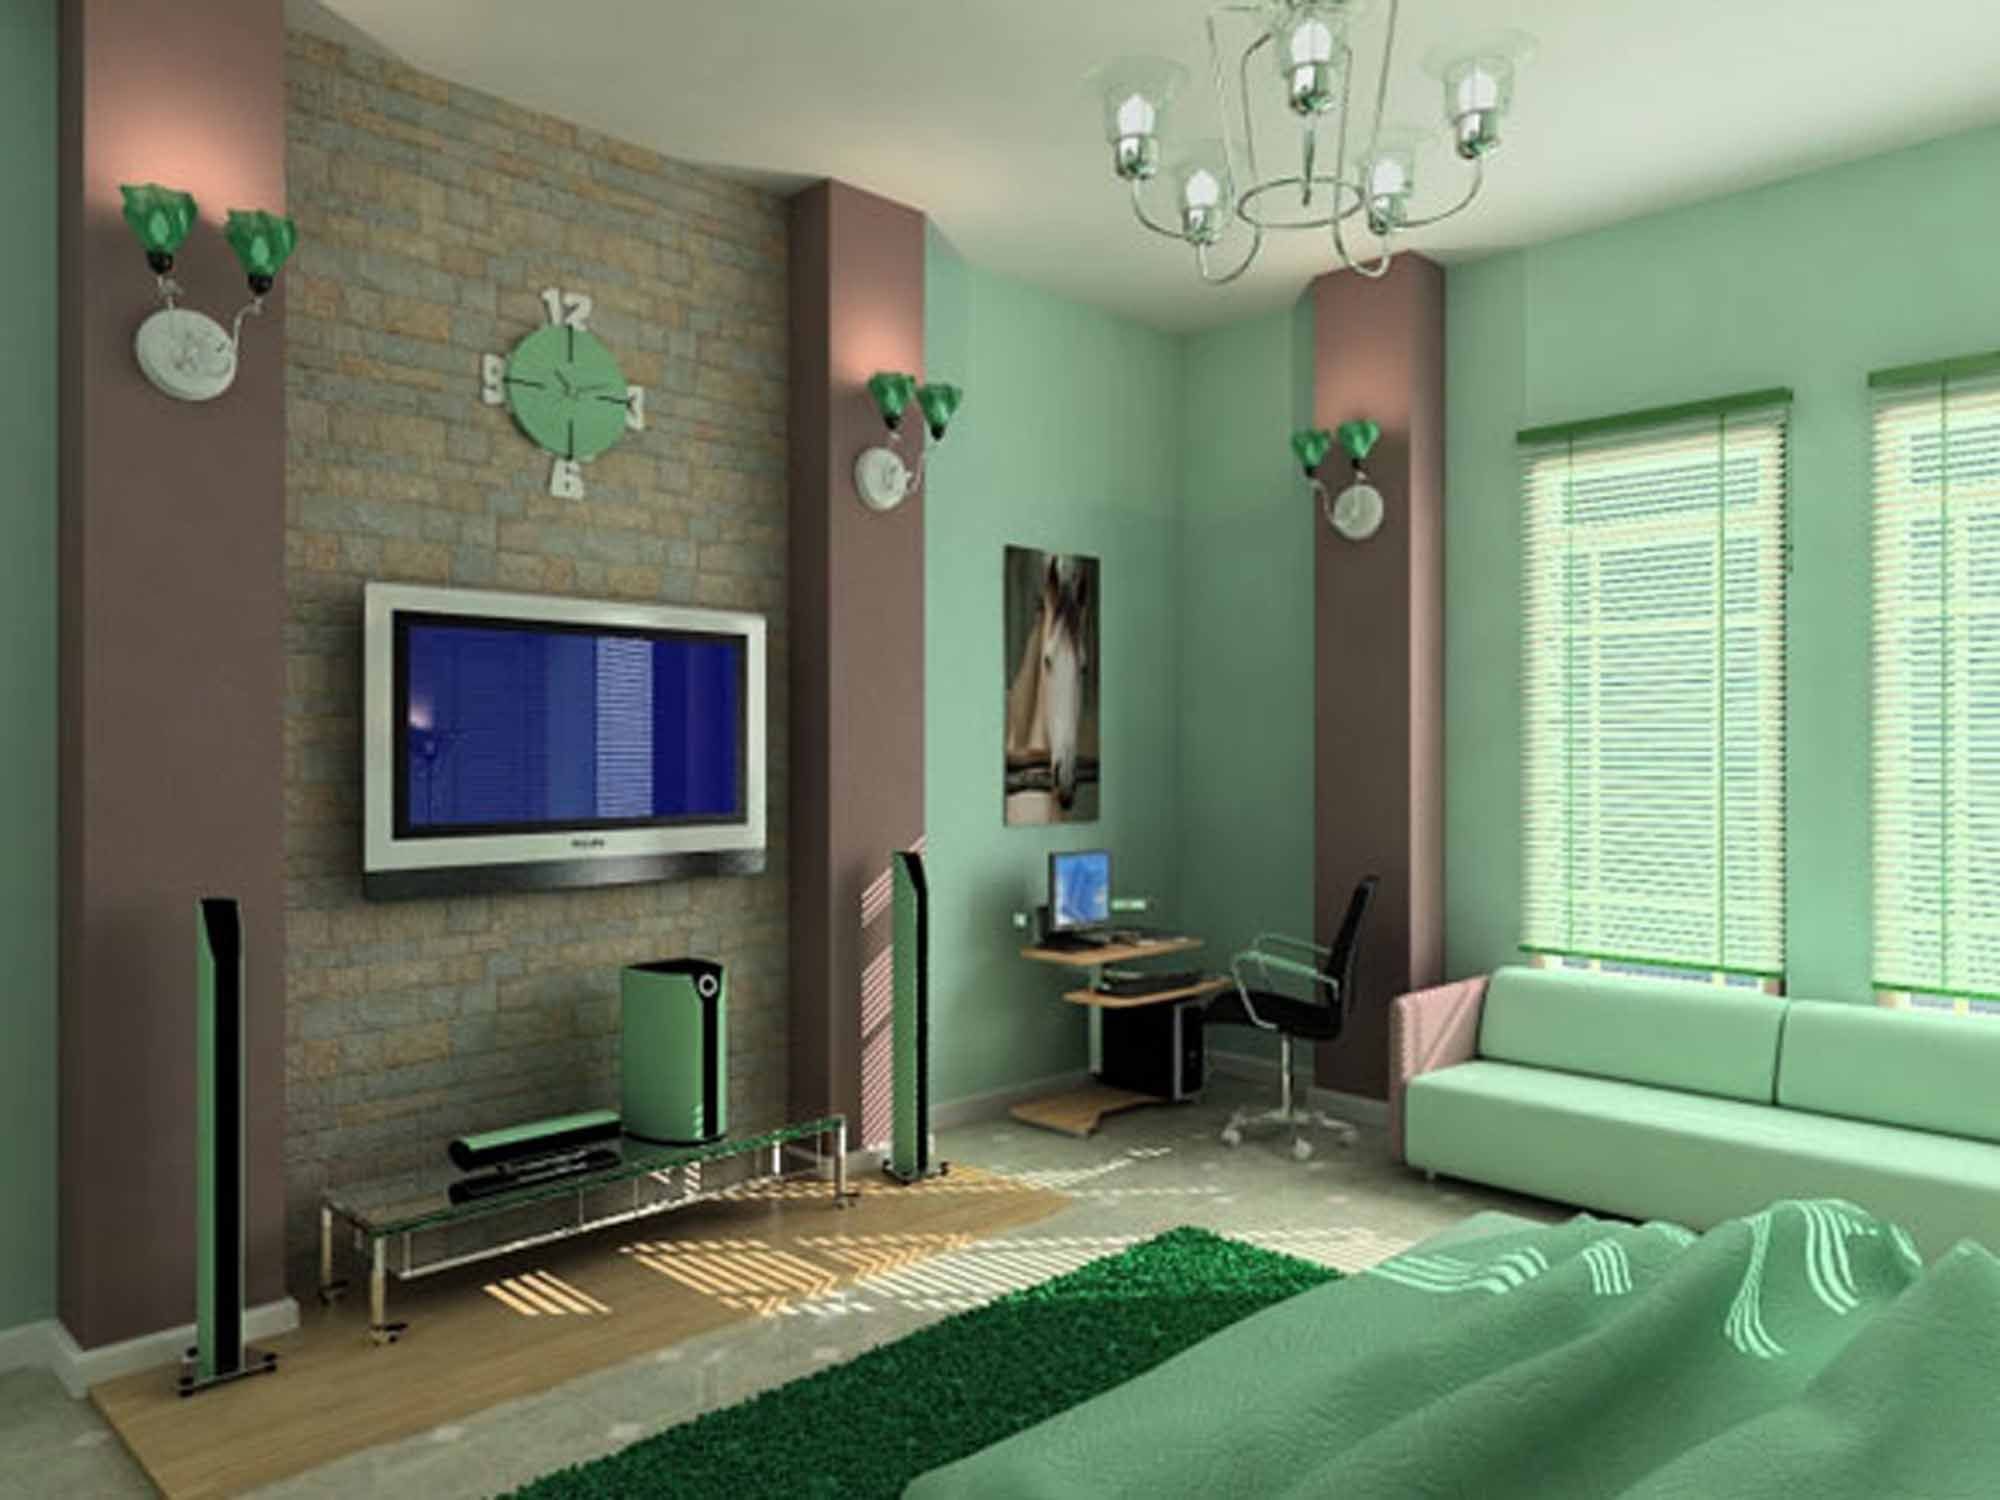 green bedroom interior design green interior design green interior - Green Bedroom Design